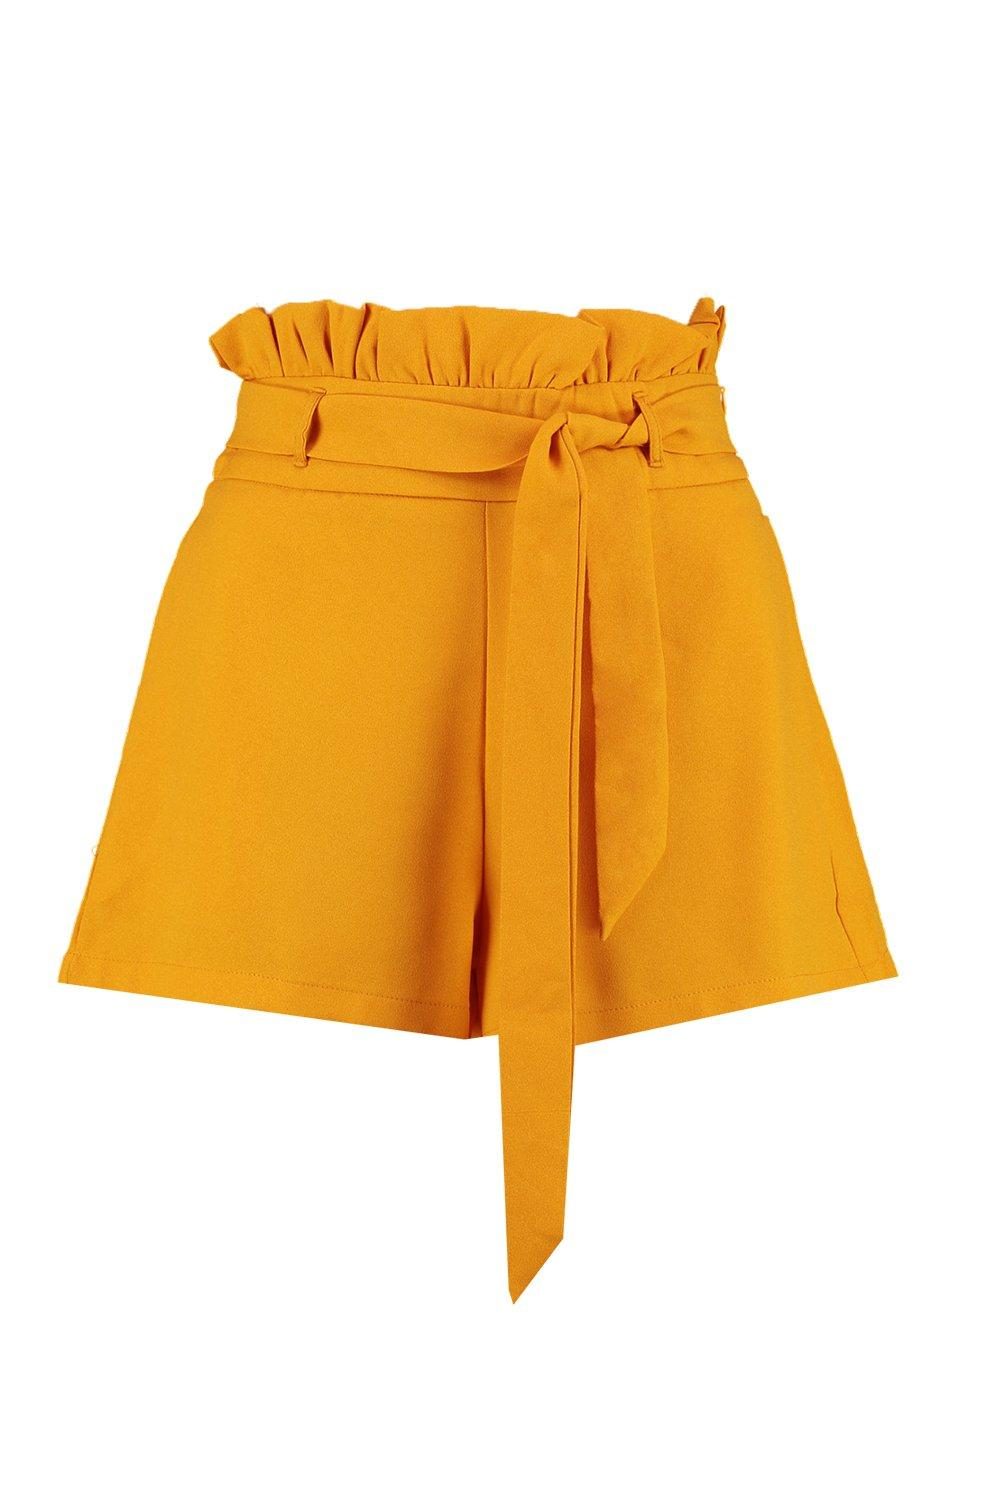 Waist Tie Paper amber Shorts Bag Belted O6xqza